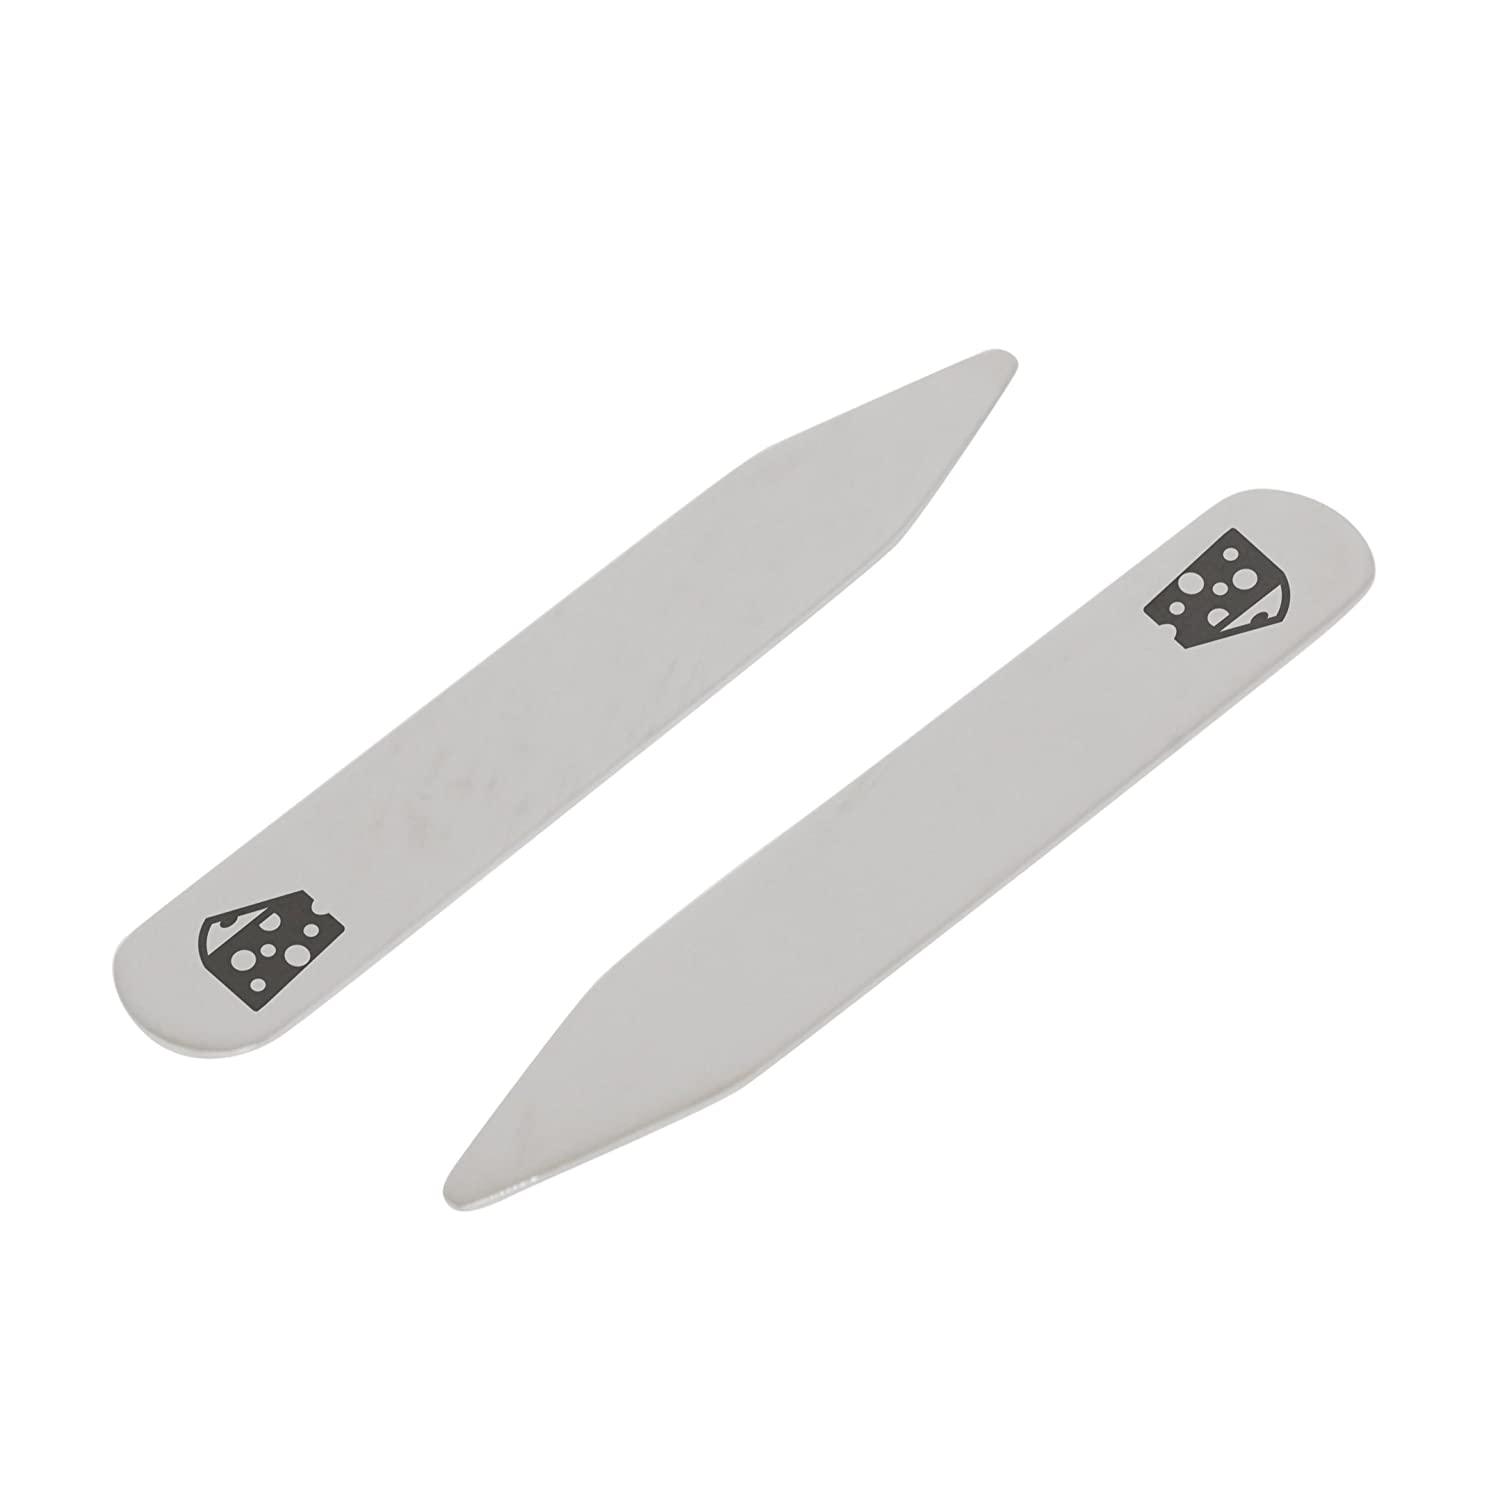 2.5 Inch Metal Collar Stiffeners Made In USA MODERN GOODS SHOP Stainless Steel Collar Stays With Laser Engraved Cheese Design